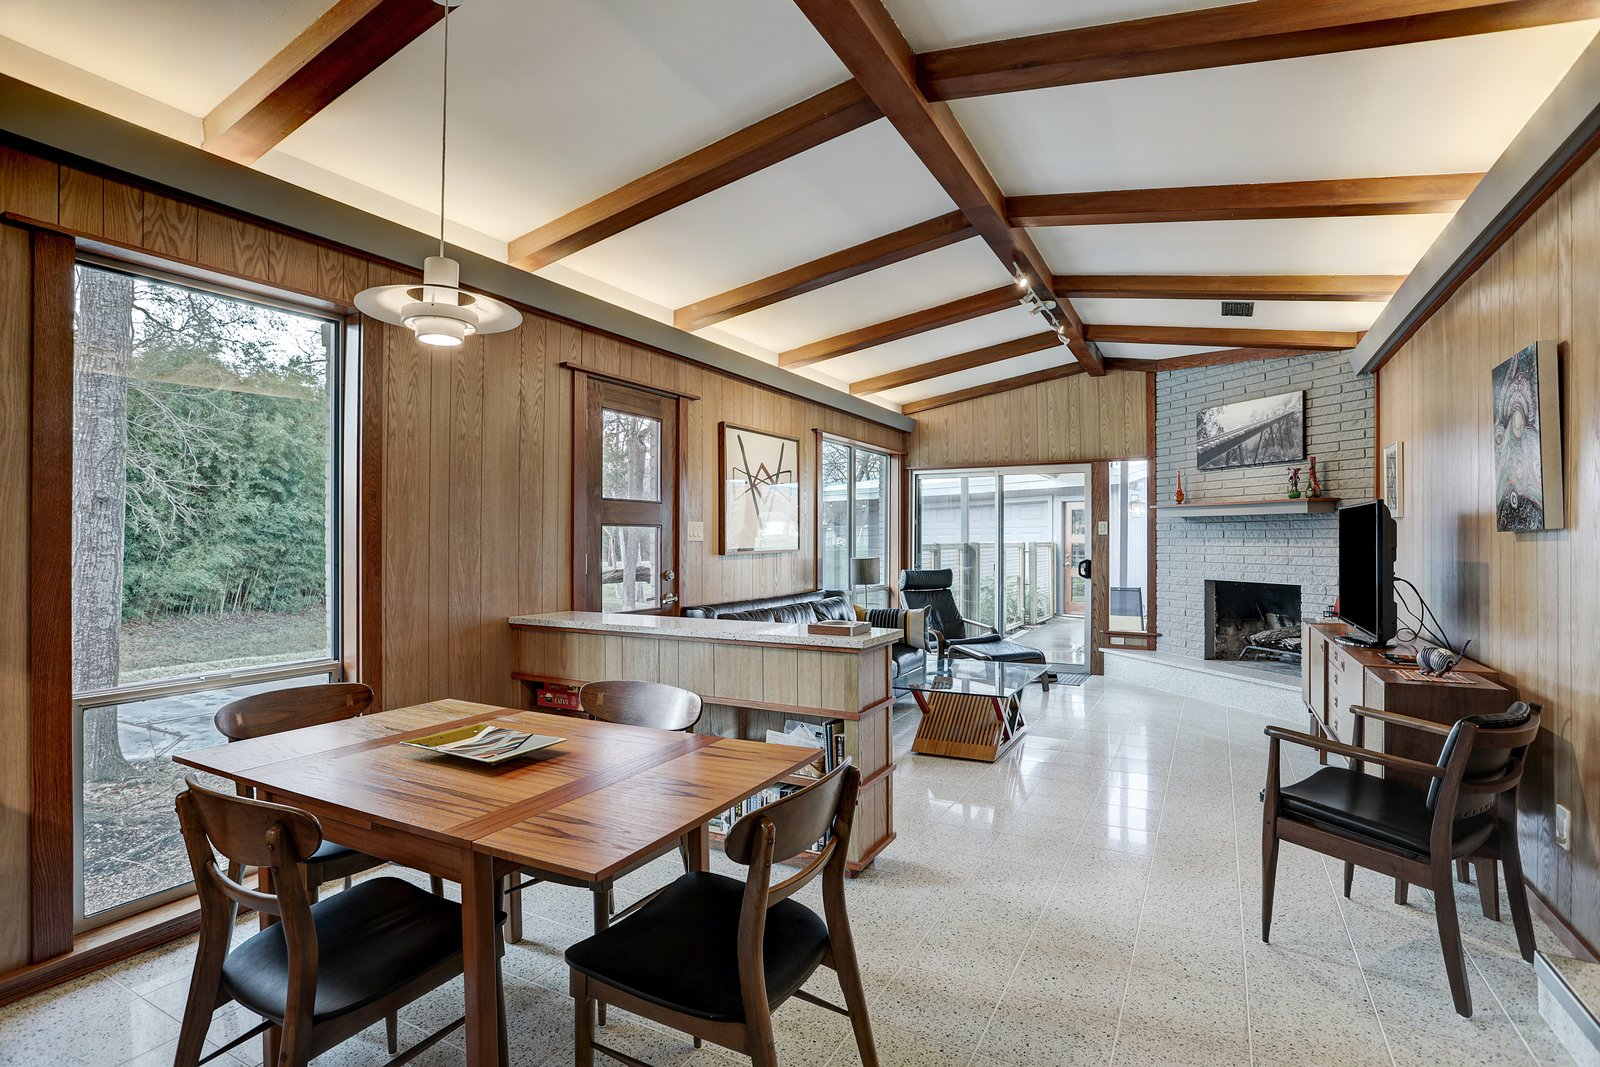 Sporting restored midcentury furniture, the main great room is a time capsule in itself. Wood beams contrast with the crisp white, vaulted ceilings, which provide indirect cove lighting. An original fireplace sits tucked in the corner.